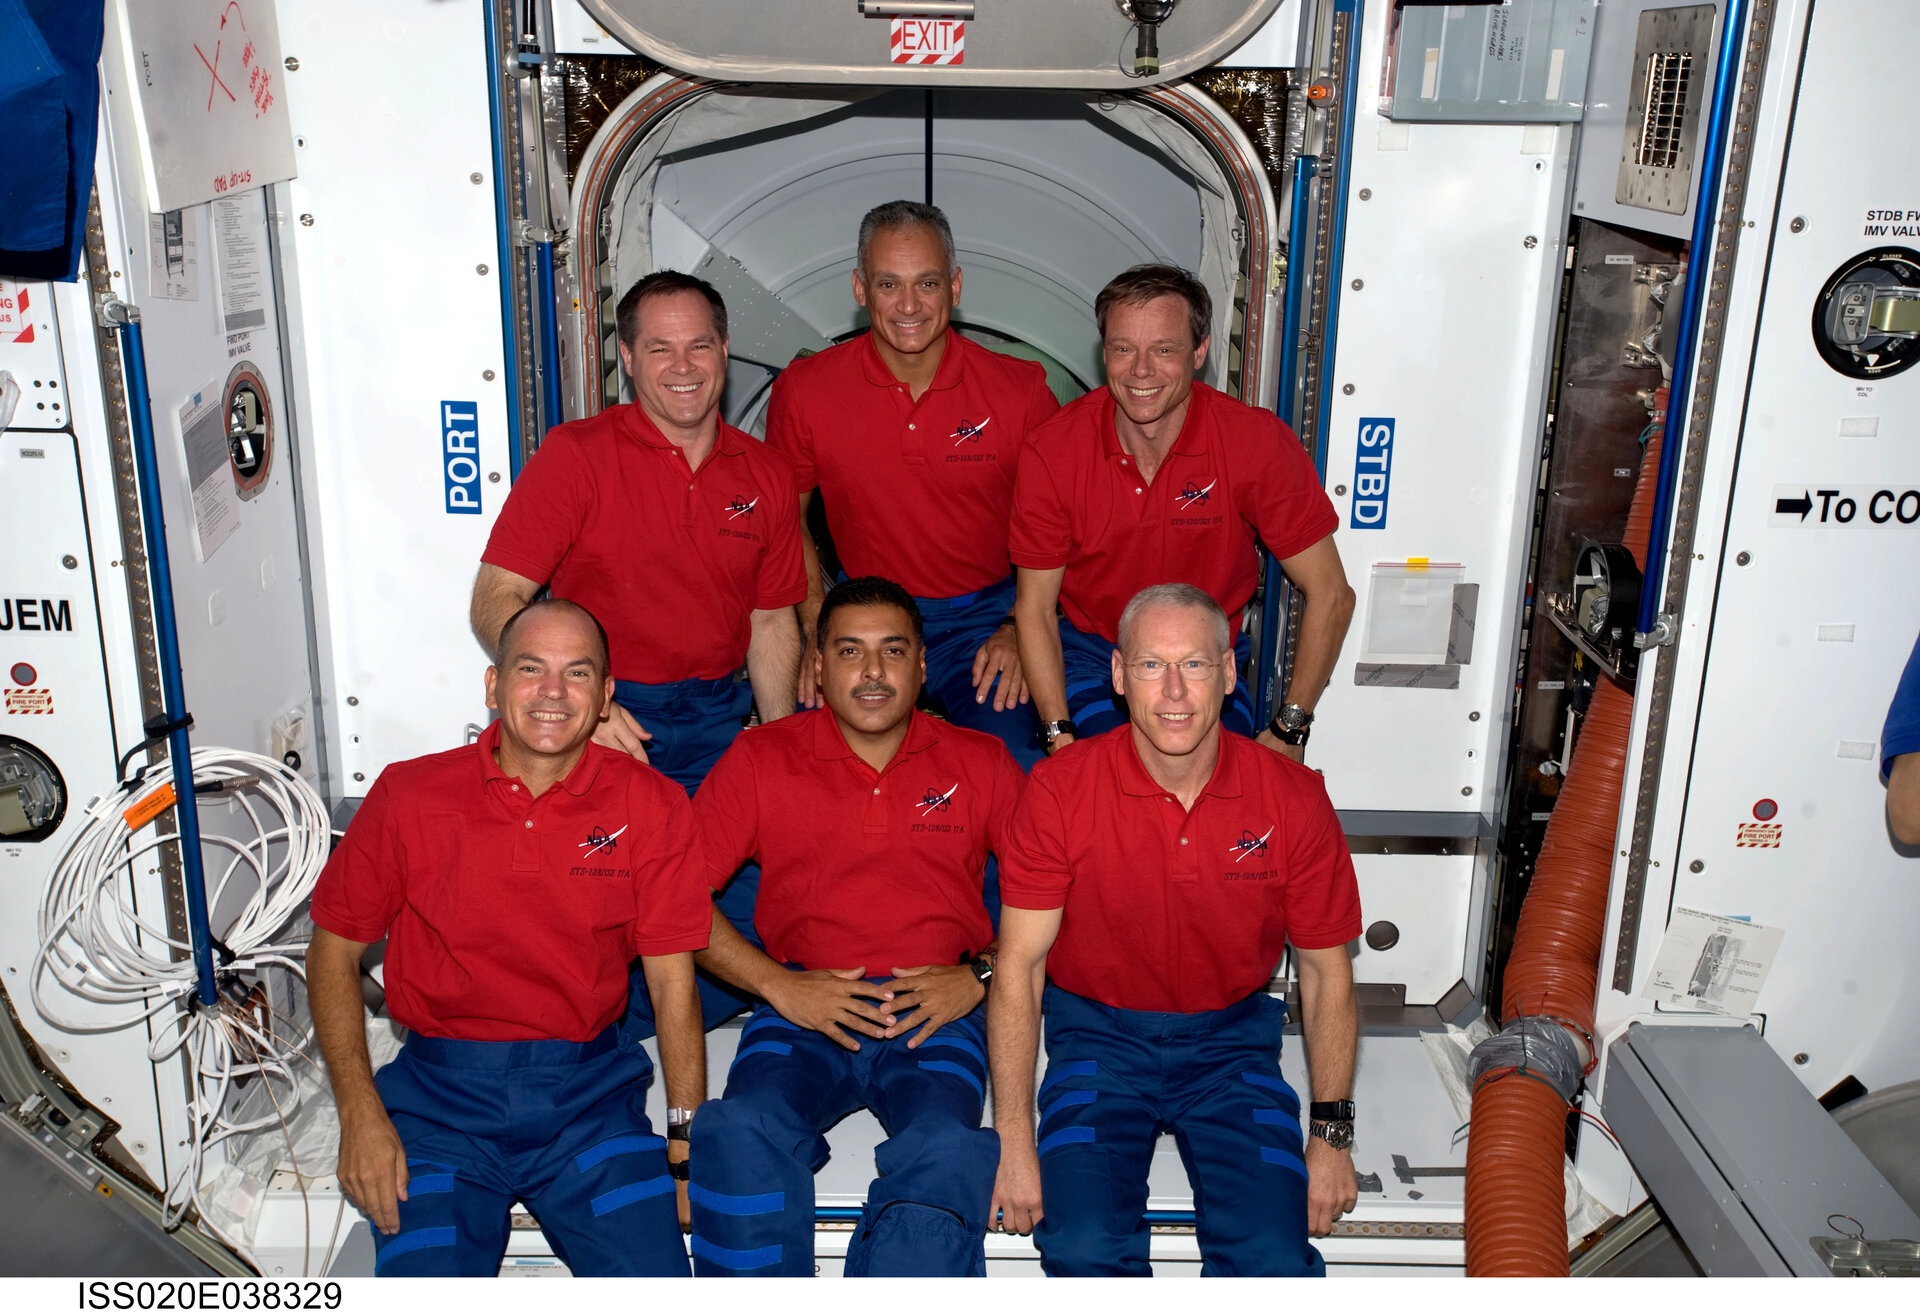 STS-128 crew portrait (without Expedition 20 exchange crewmembers)